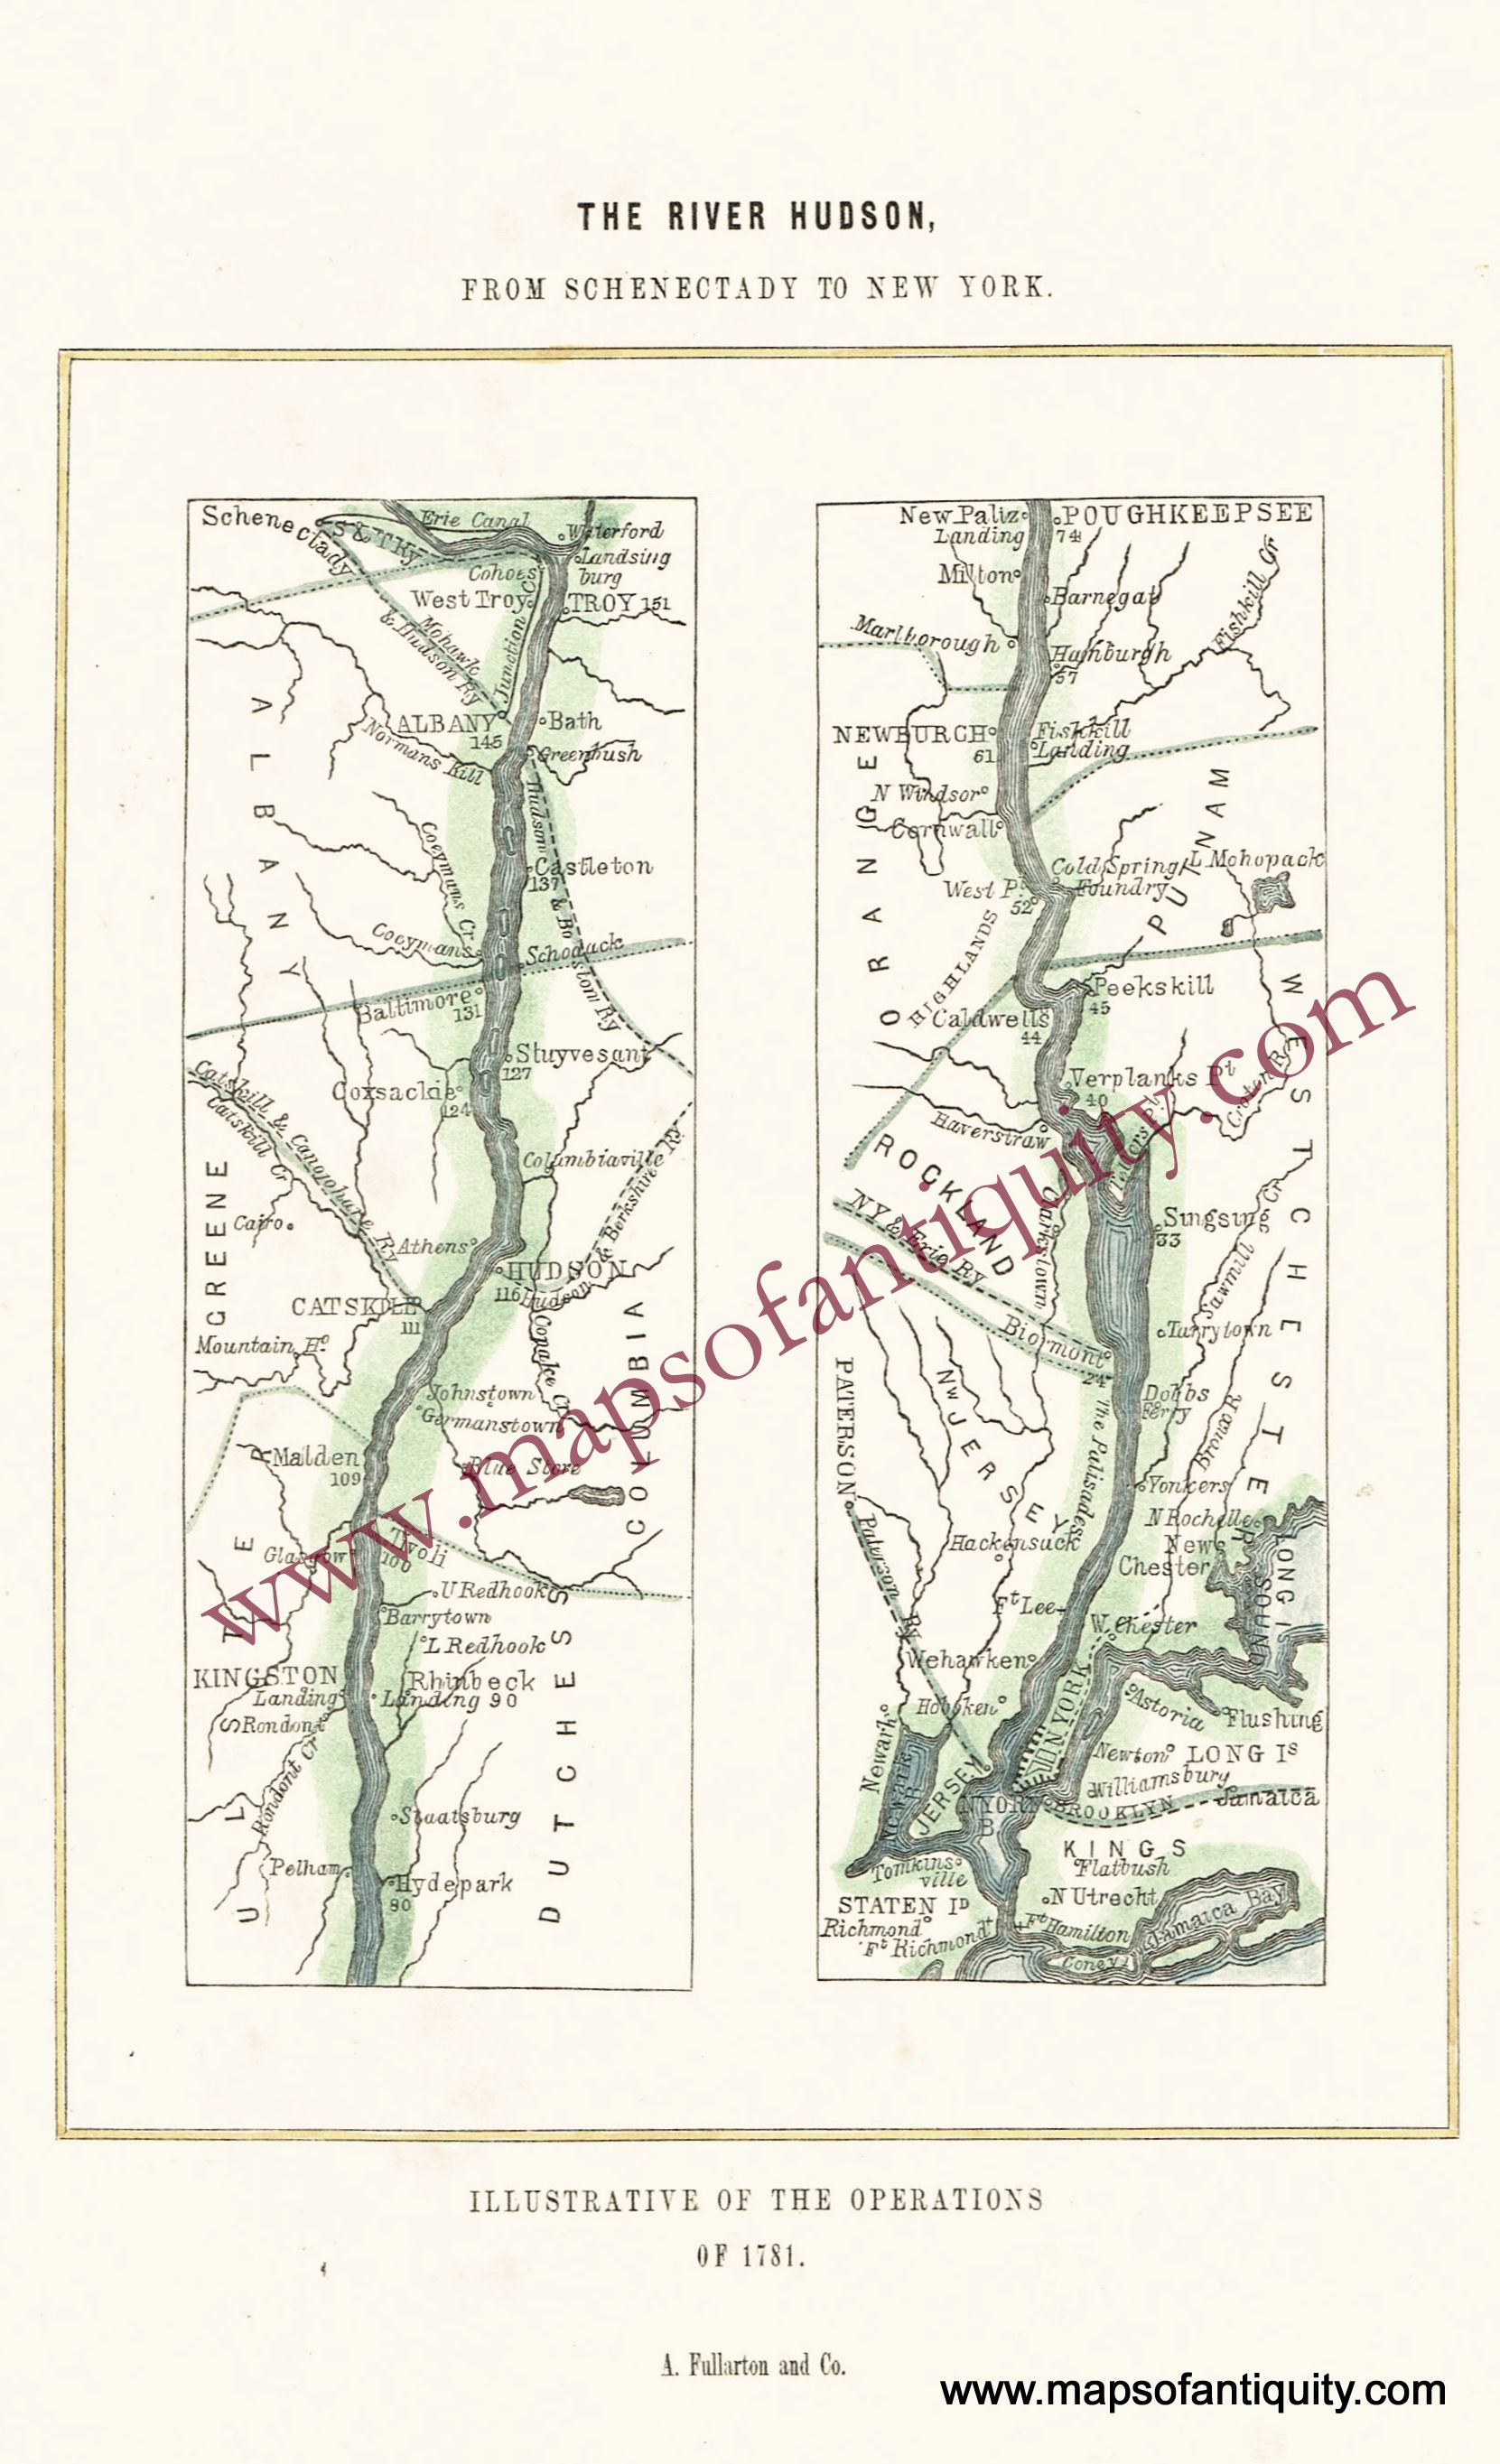 Schenectady New York Map.The River Hudson From Schenectady To New York Illustrative Of The